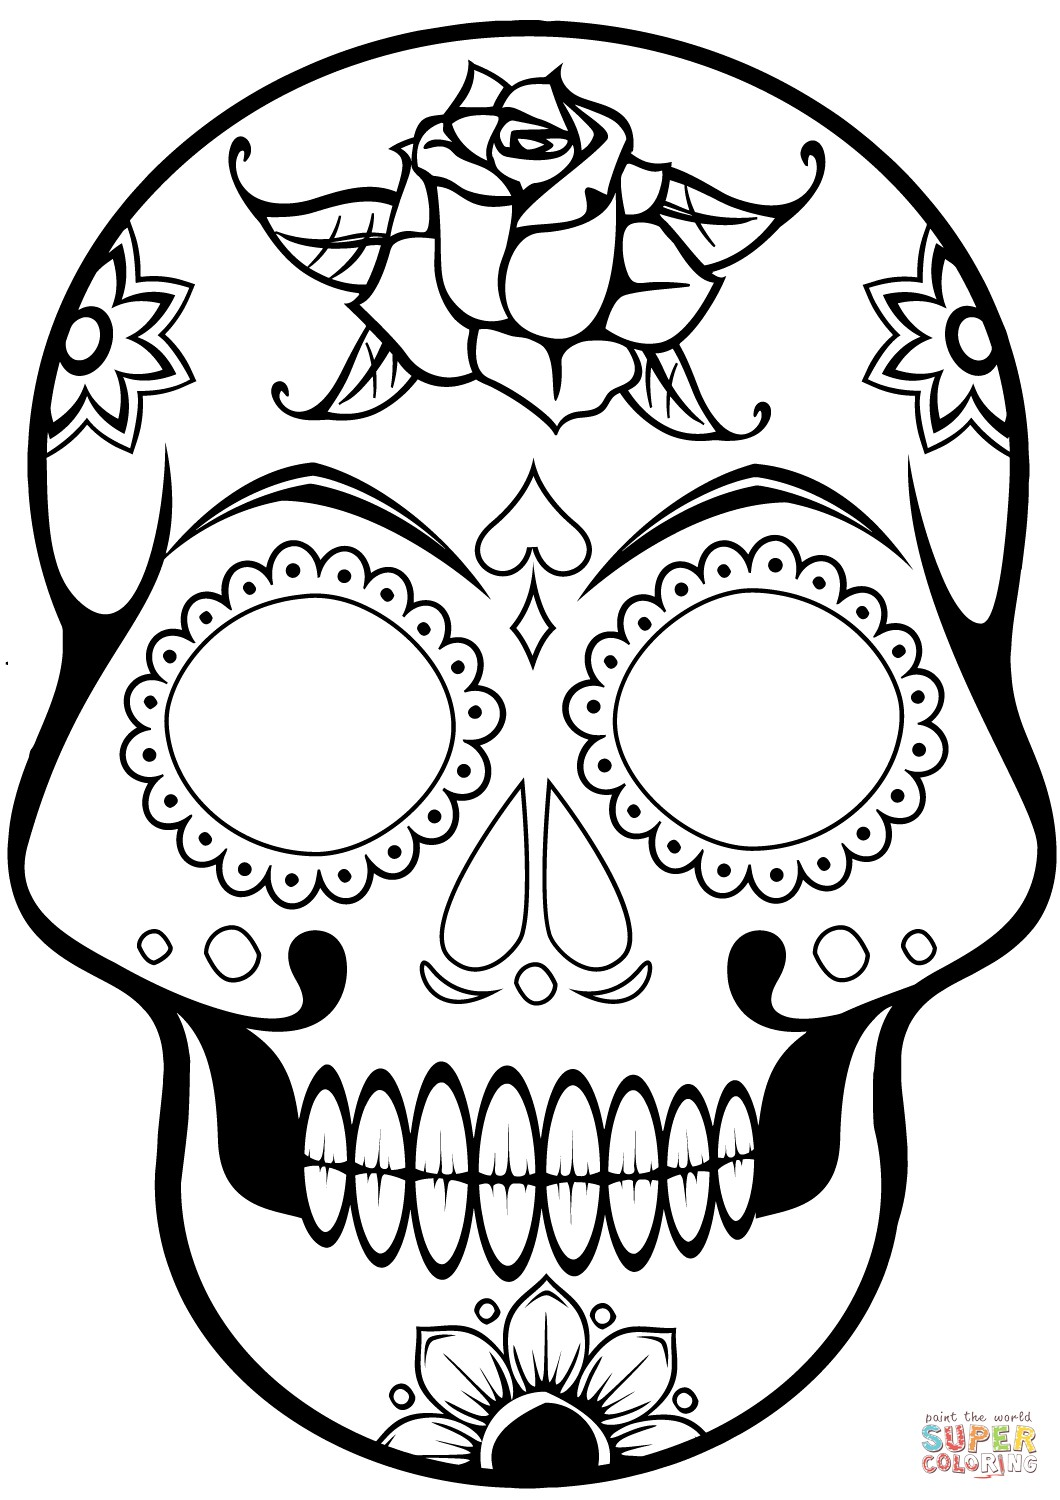 1060x1500 Day Of The Dead Skull Coloring Pages Easy Sugar With Rallytv Org